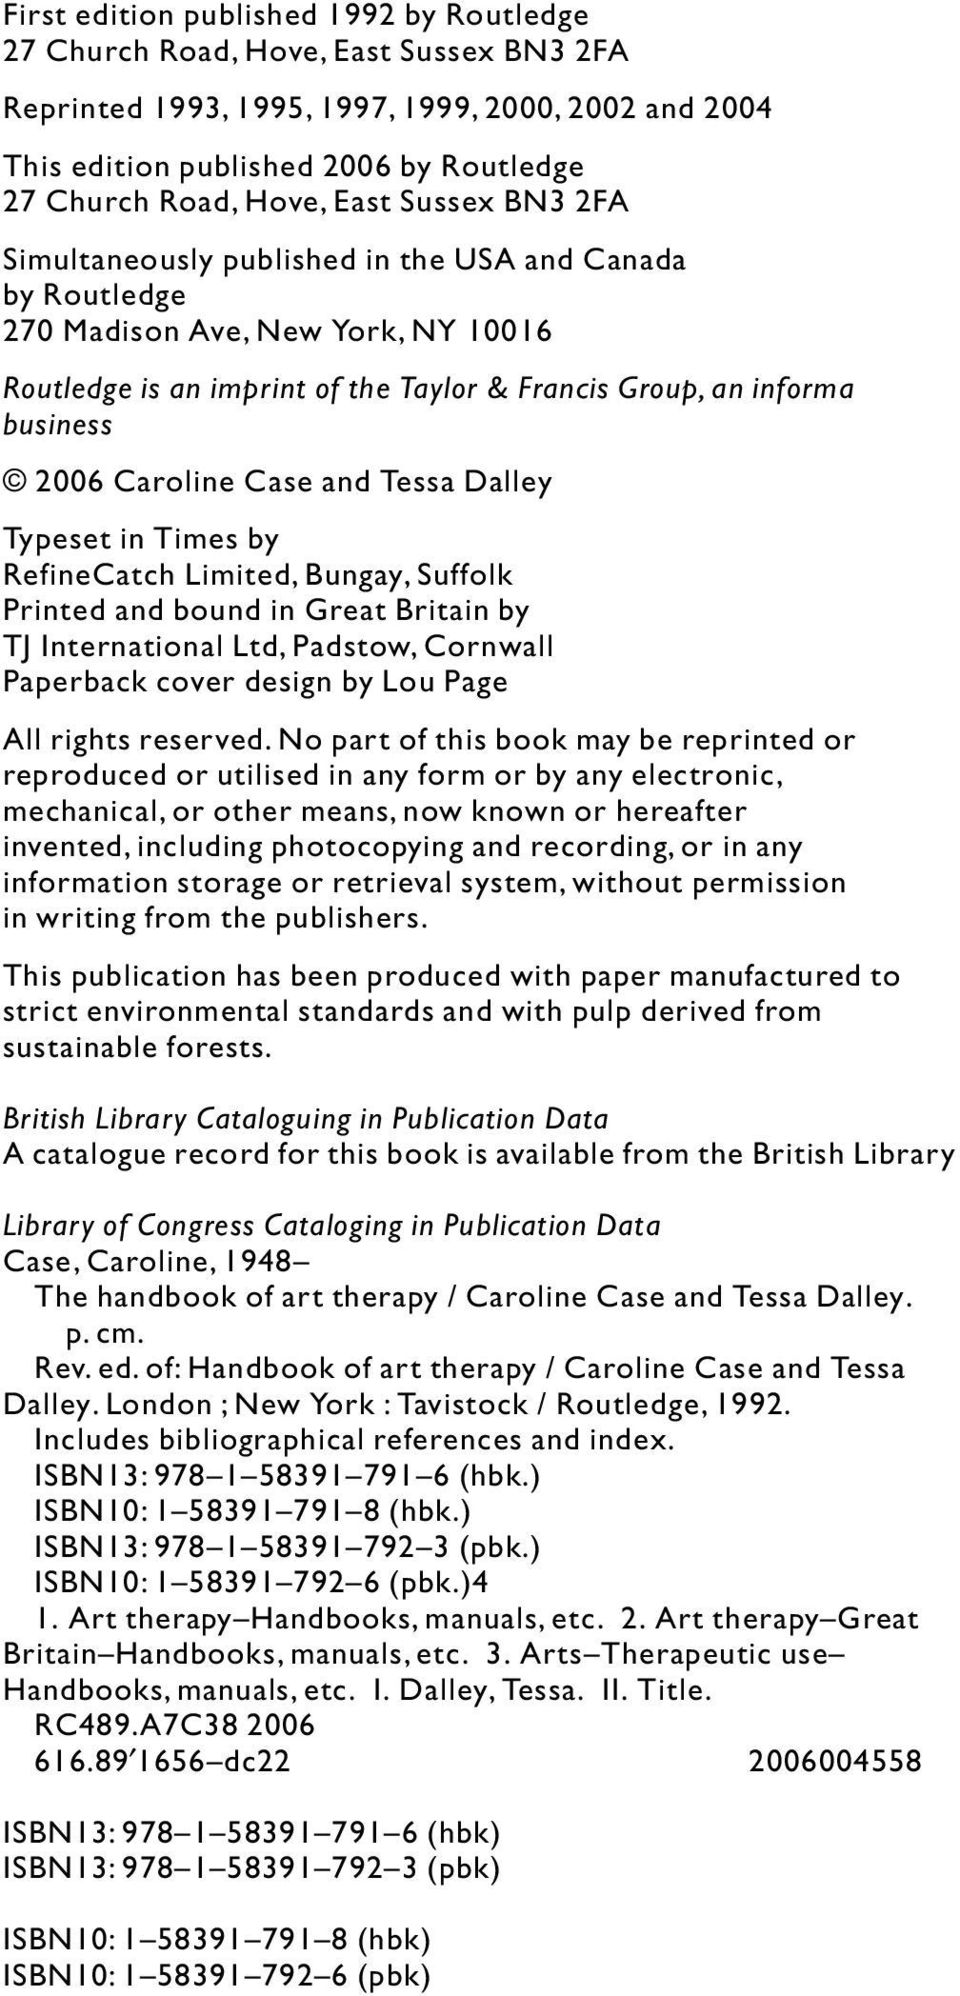 2006 Caroline Case and Tessa Dalley Typeset in Times by RefineCatch Limited, Bungay, Suffolk Printed and bound in Great Britain by TJ International Ltd, Padstow, Cornwall Paperback cover design by